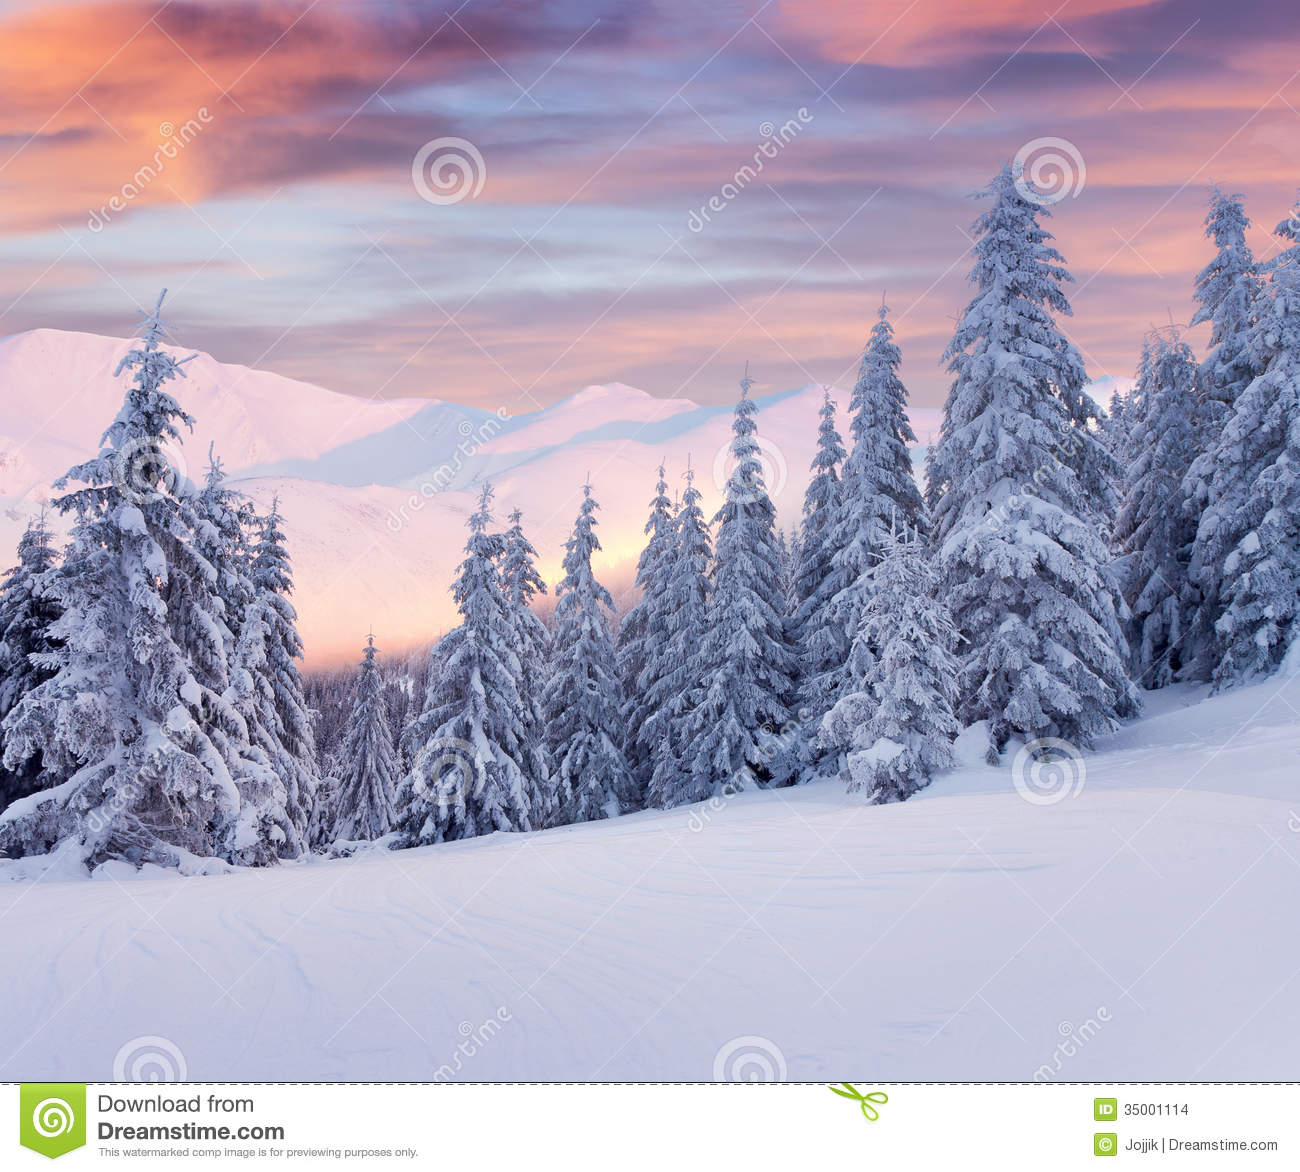 sch ne winterlandschaft in den bergen sonnenaufgang stockbilder bild 35001114. Black Bedroom Furniture Sets. Home Design Ideas